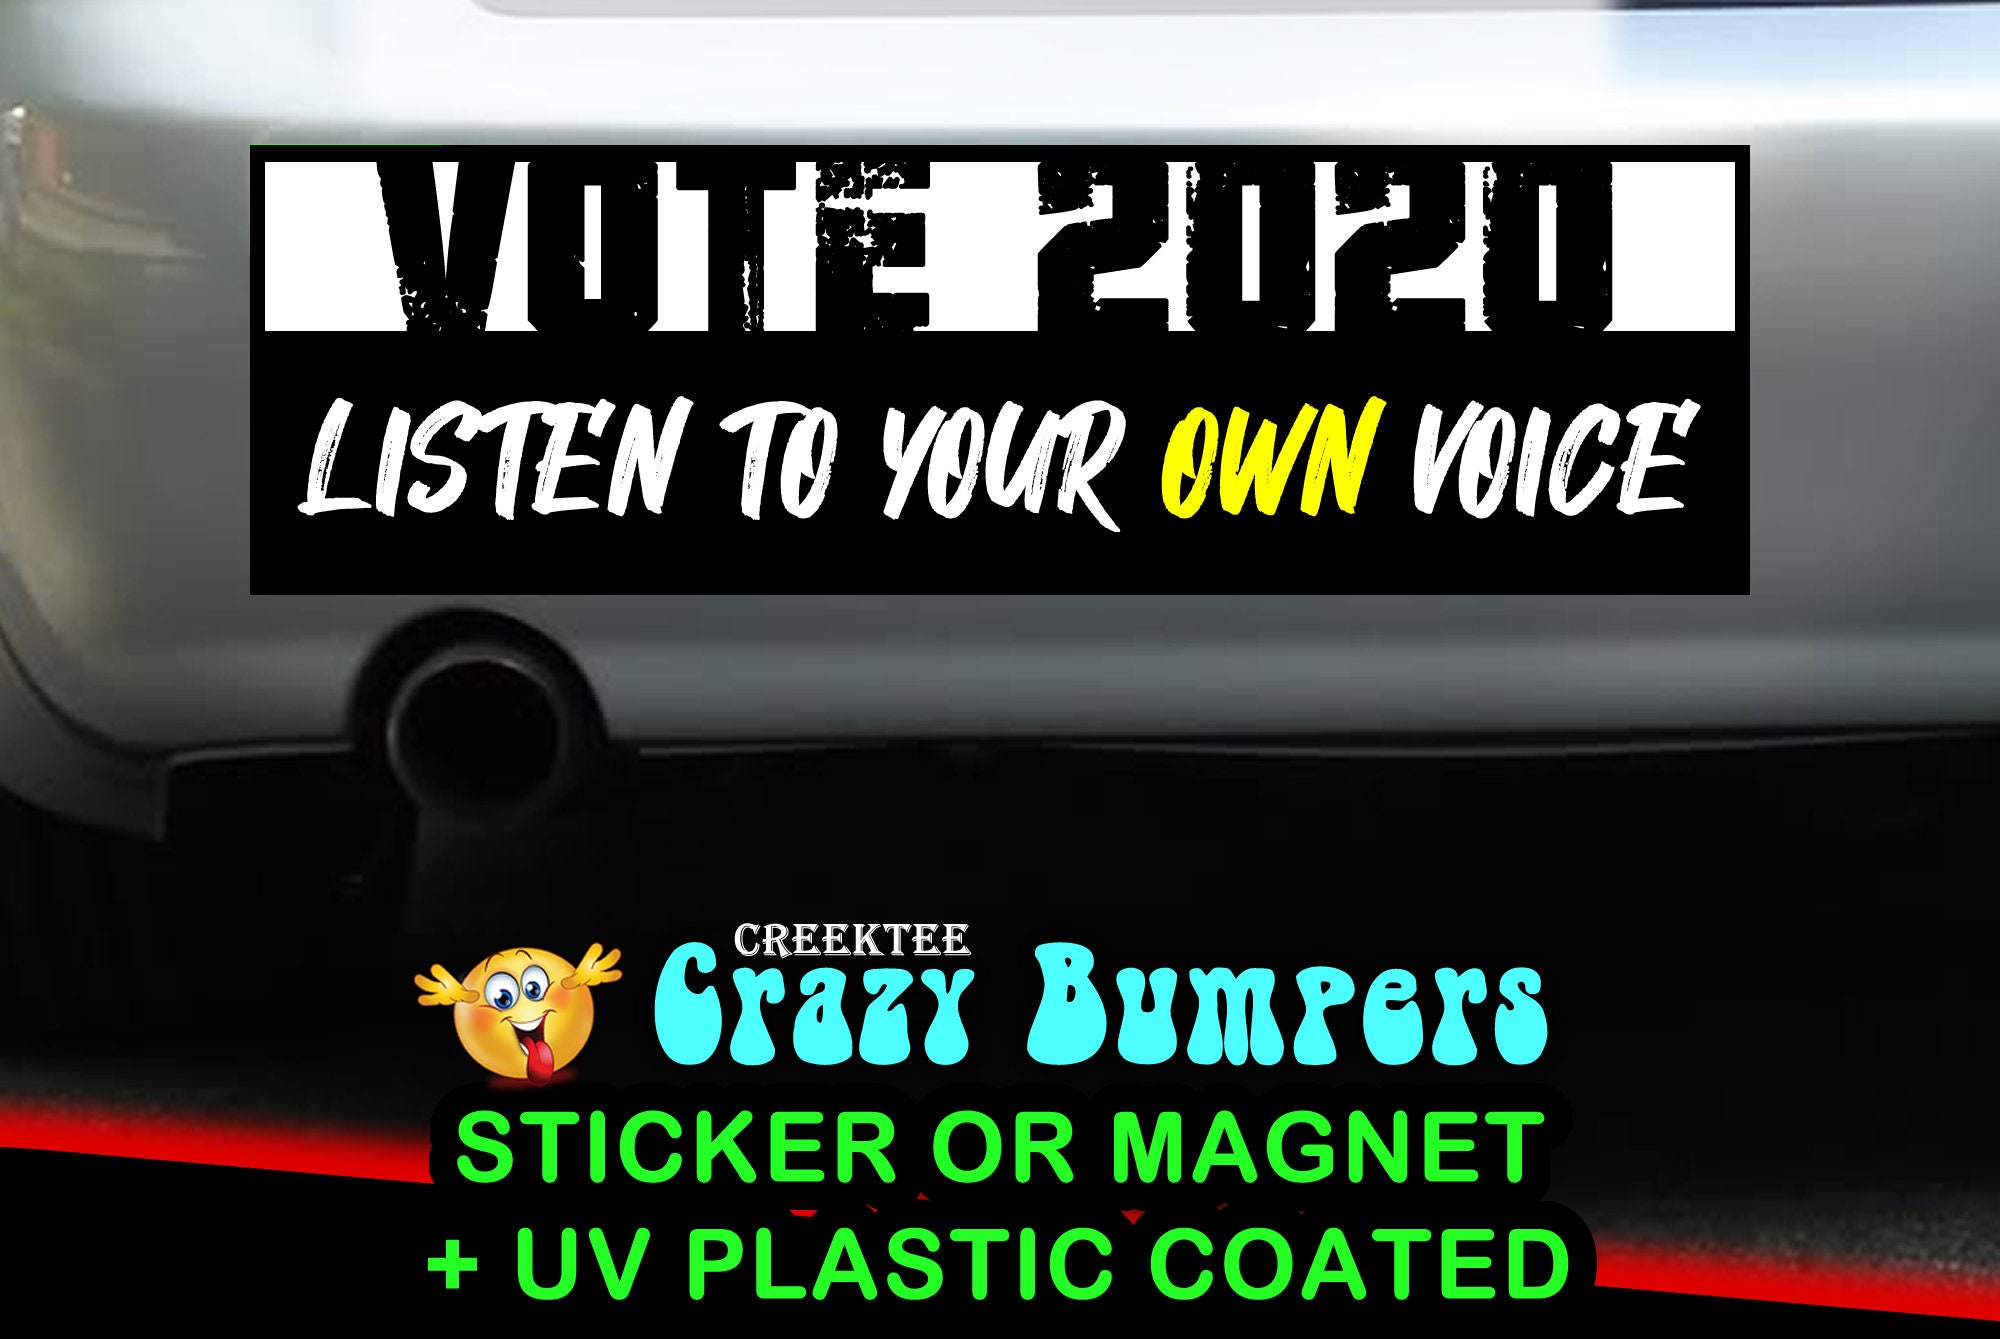 10X Vote 2020 Listen To Your Own Voice 10 x 3 Bumper Sticker or Magnetic Bumper Sticker Available